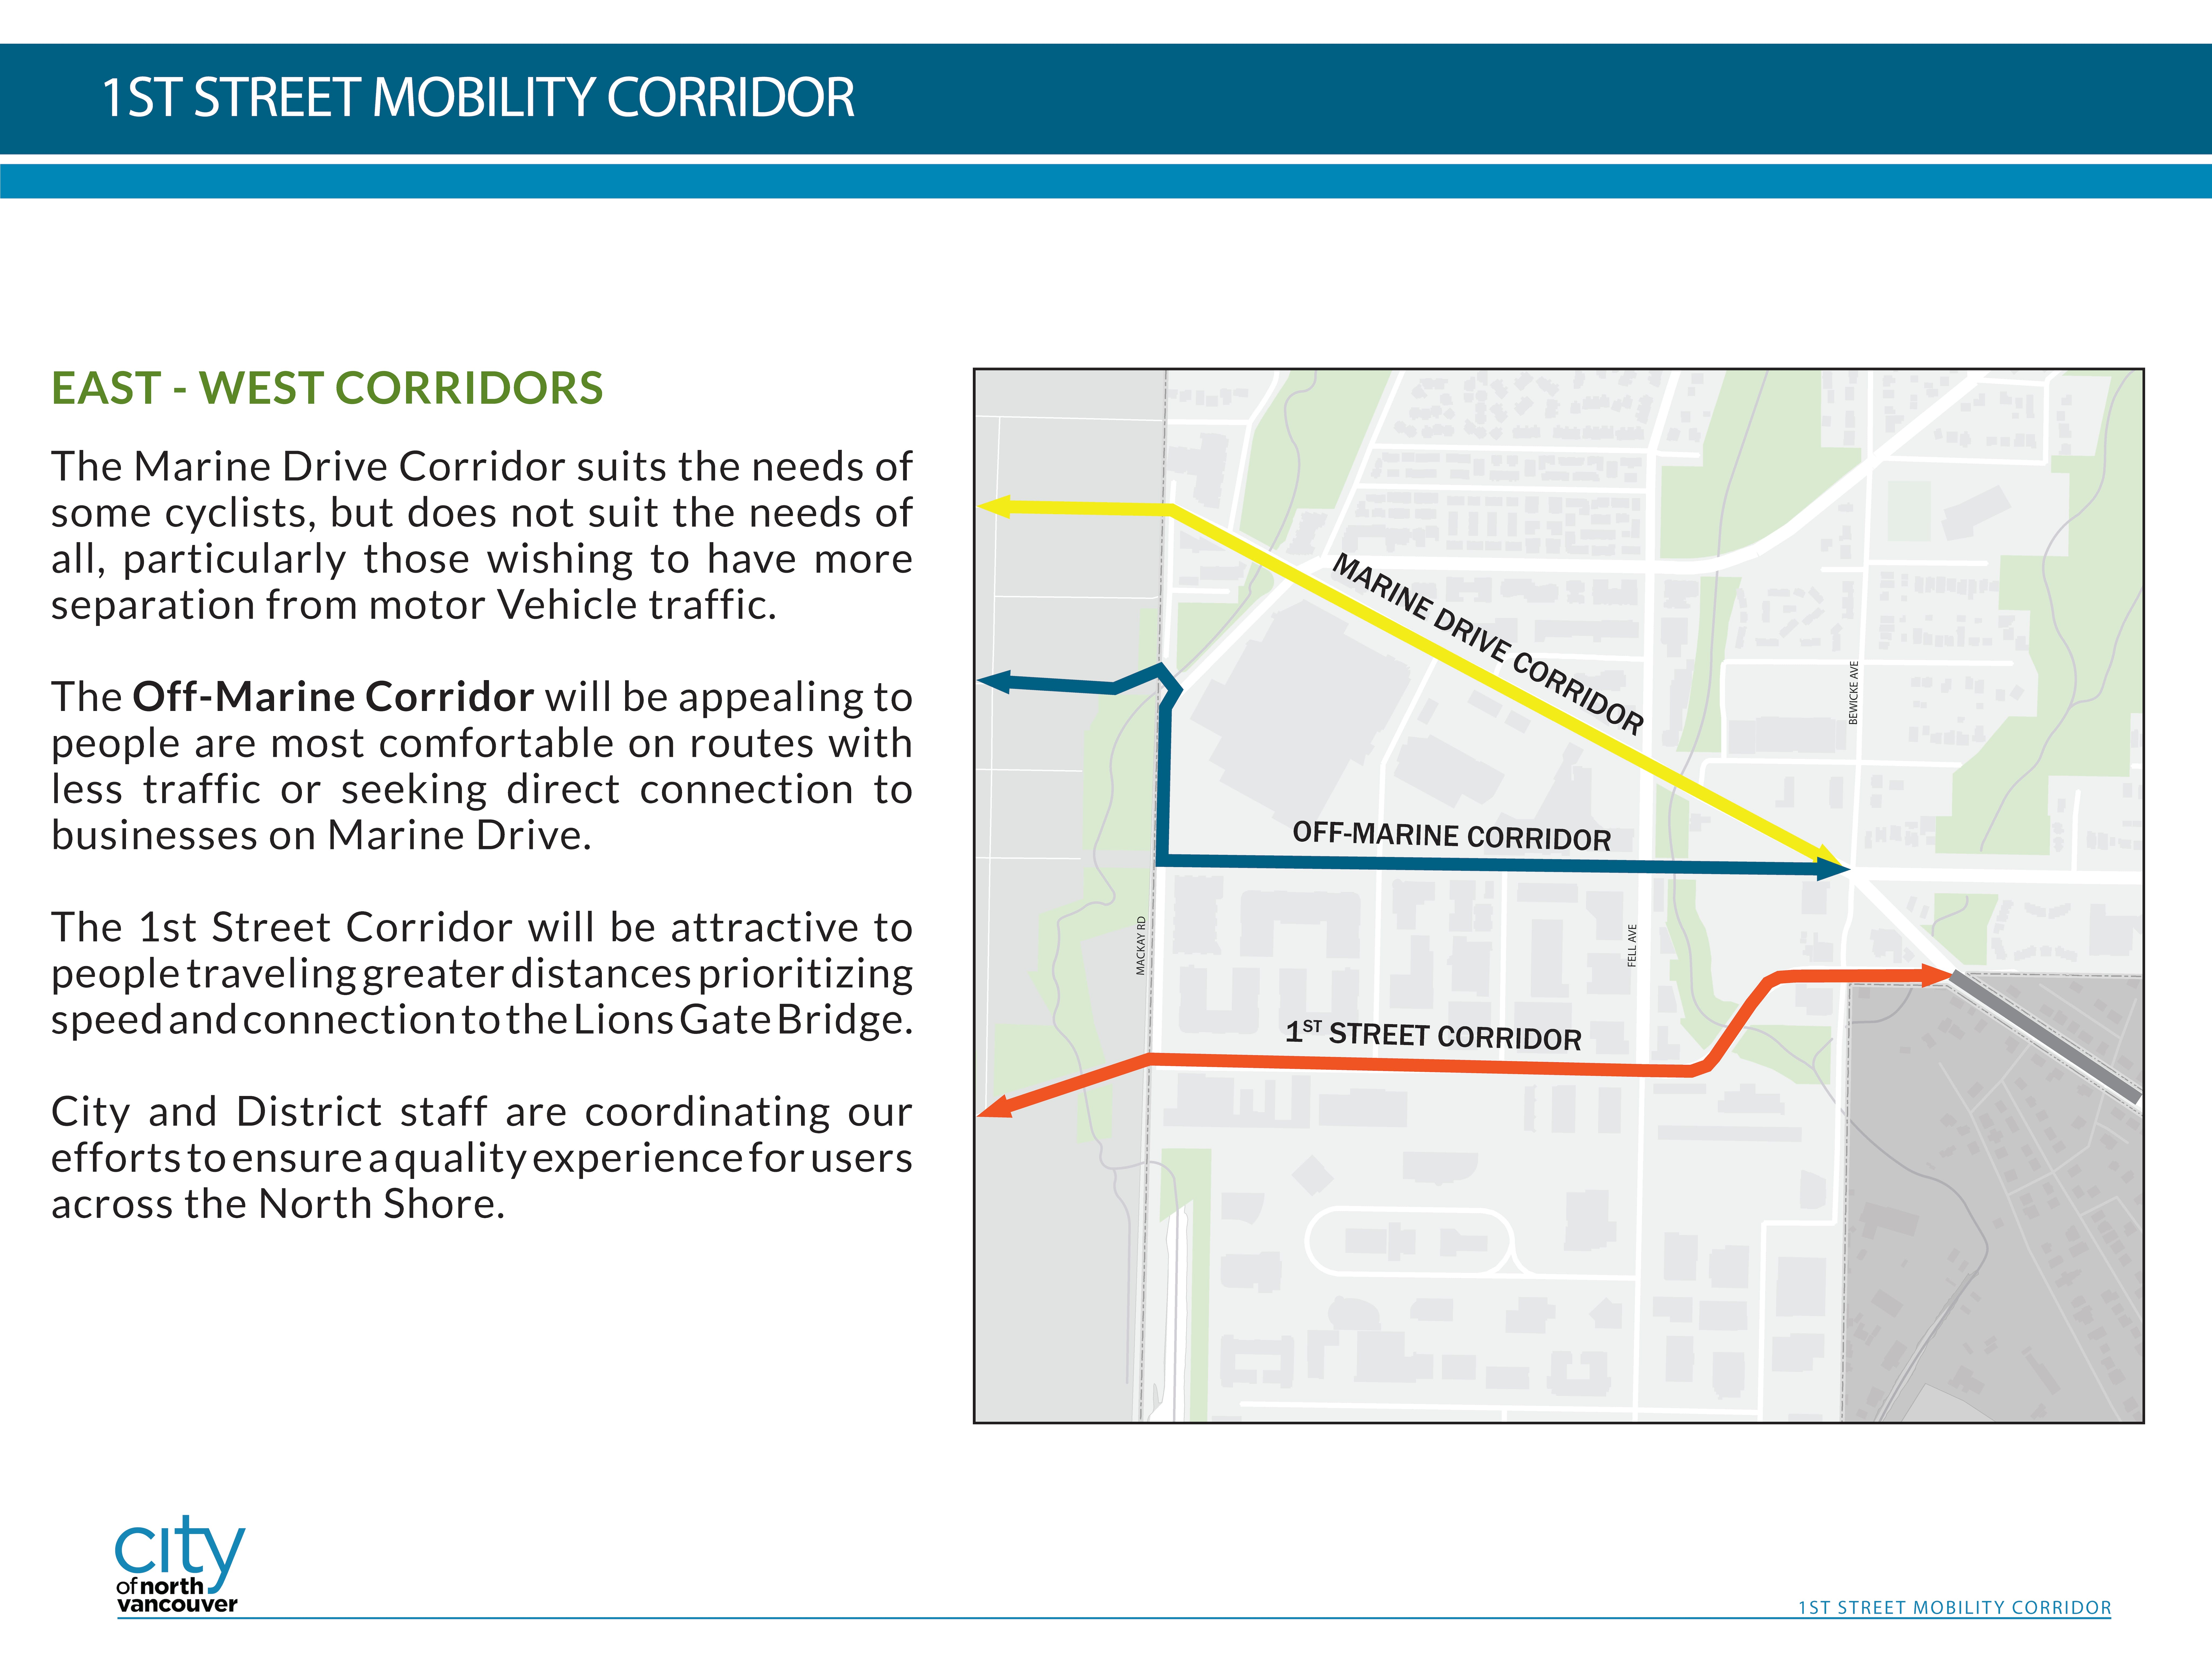 1st Street Mobility Corridor - Page 4